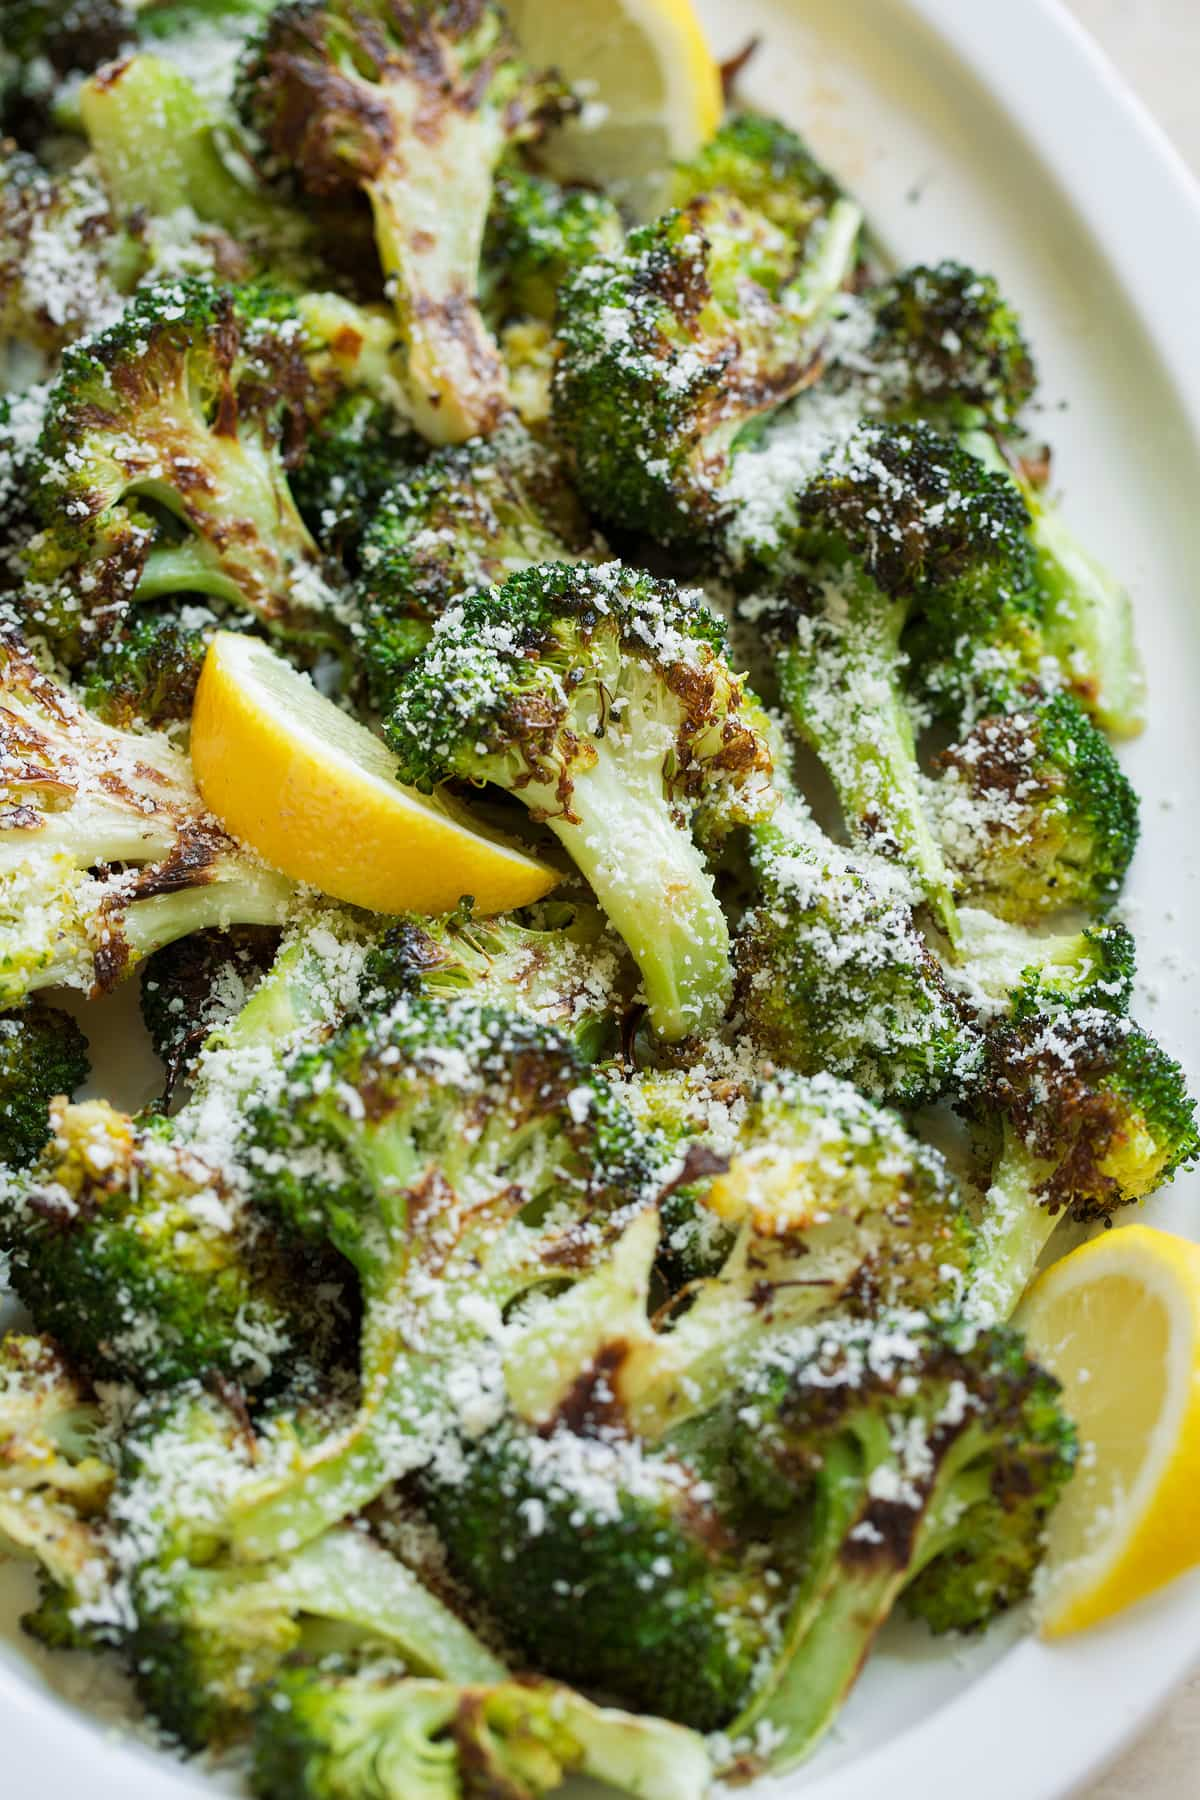 Roasted broccoli with parmesan and lemon served over top.